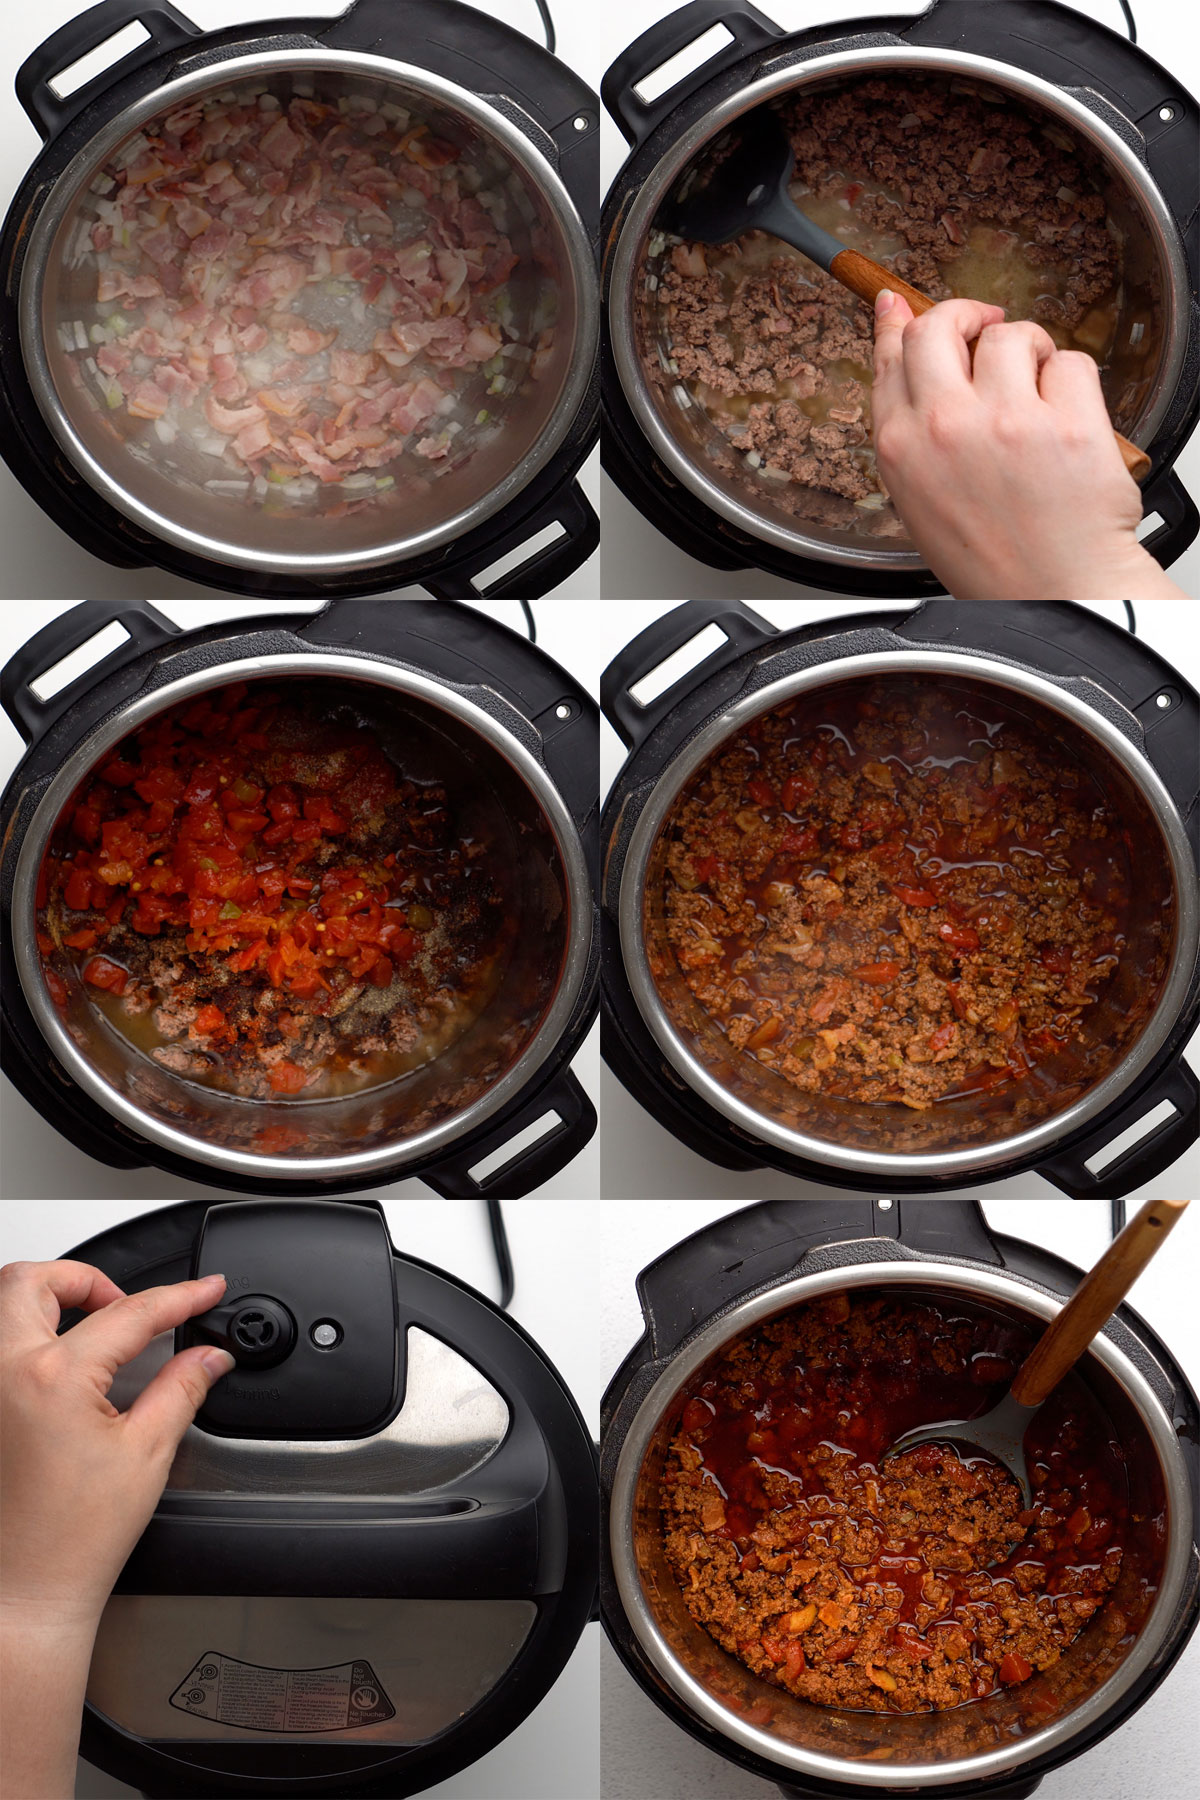 Step-by-step instructions for chili con carne recipe in Instant Pot (IP).